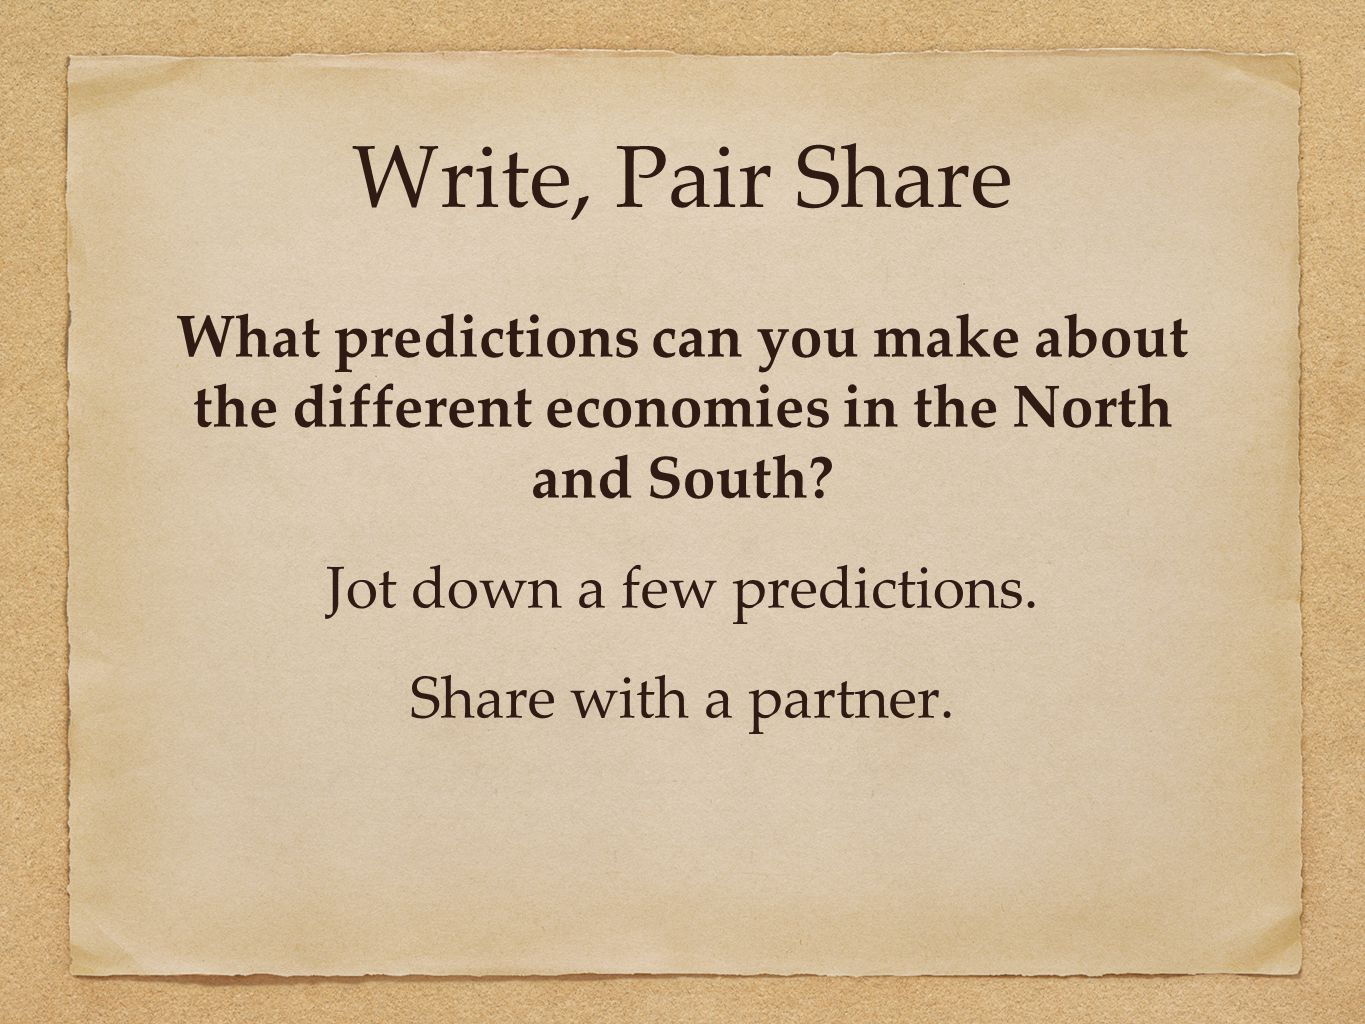 Write, Pair Share What predictions can you make about the different economies in the North and South? Jot down a few predictions. Share with a partner